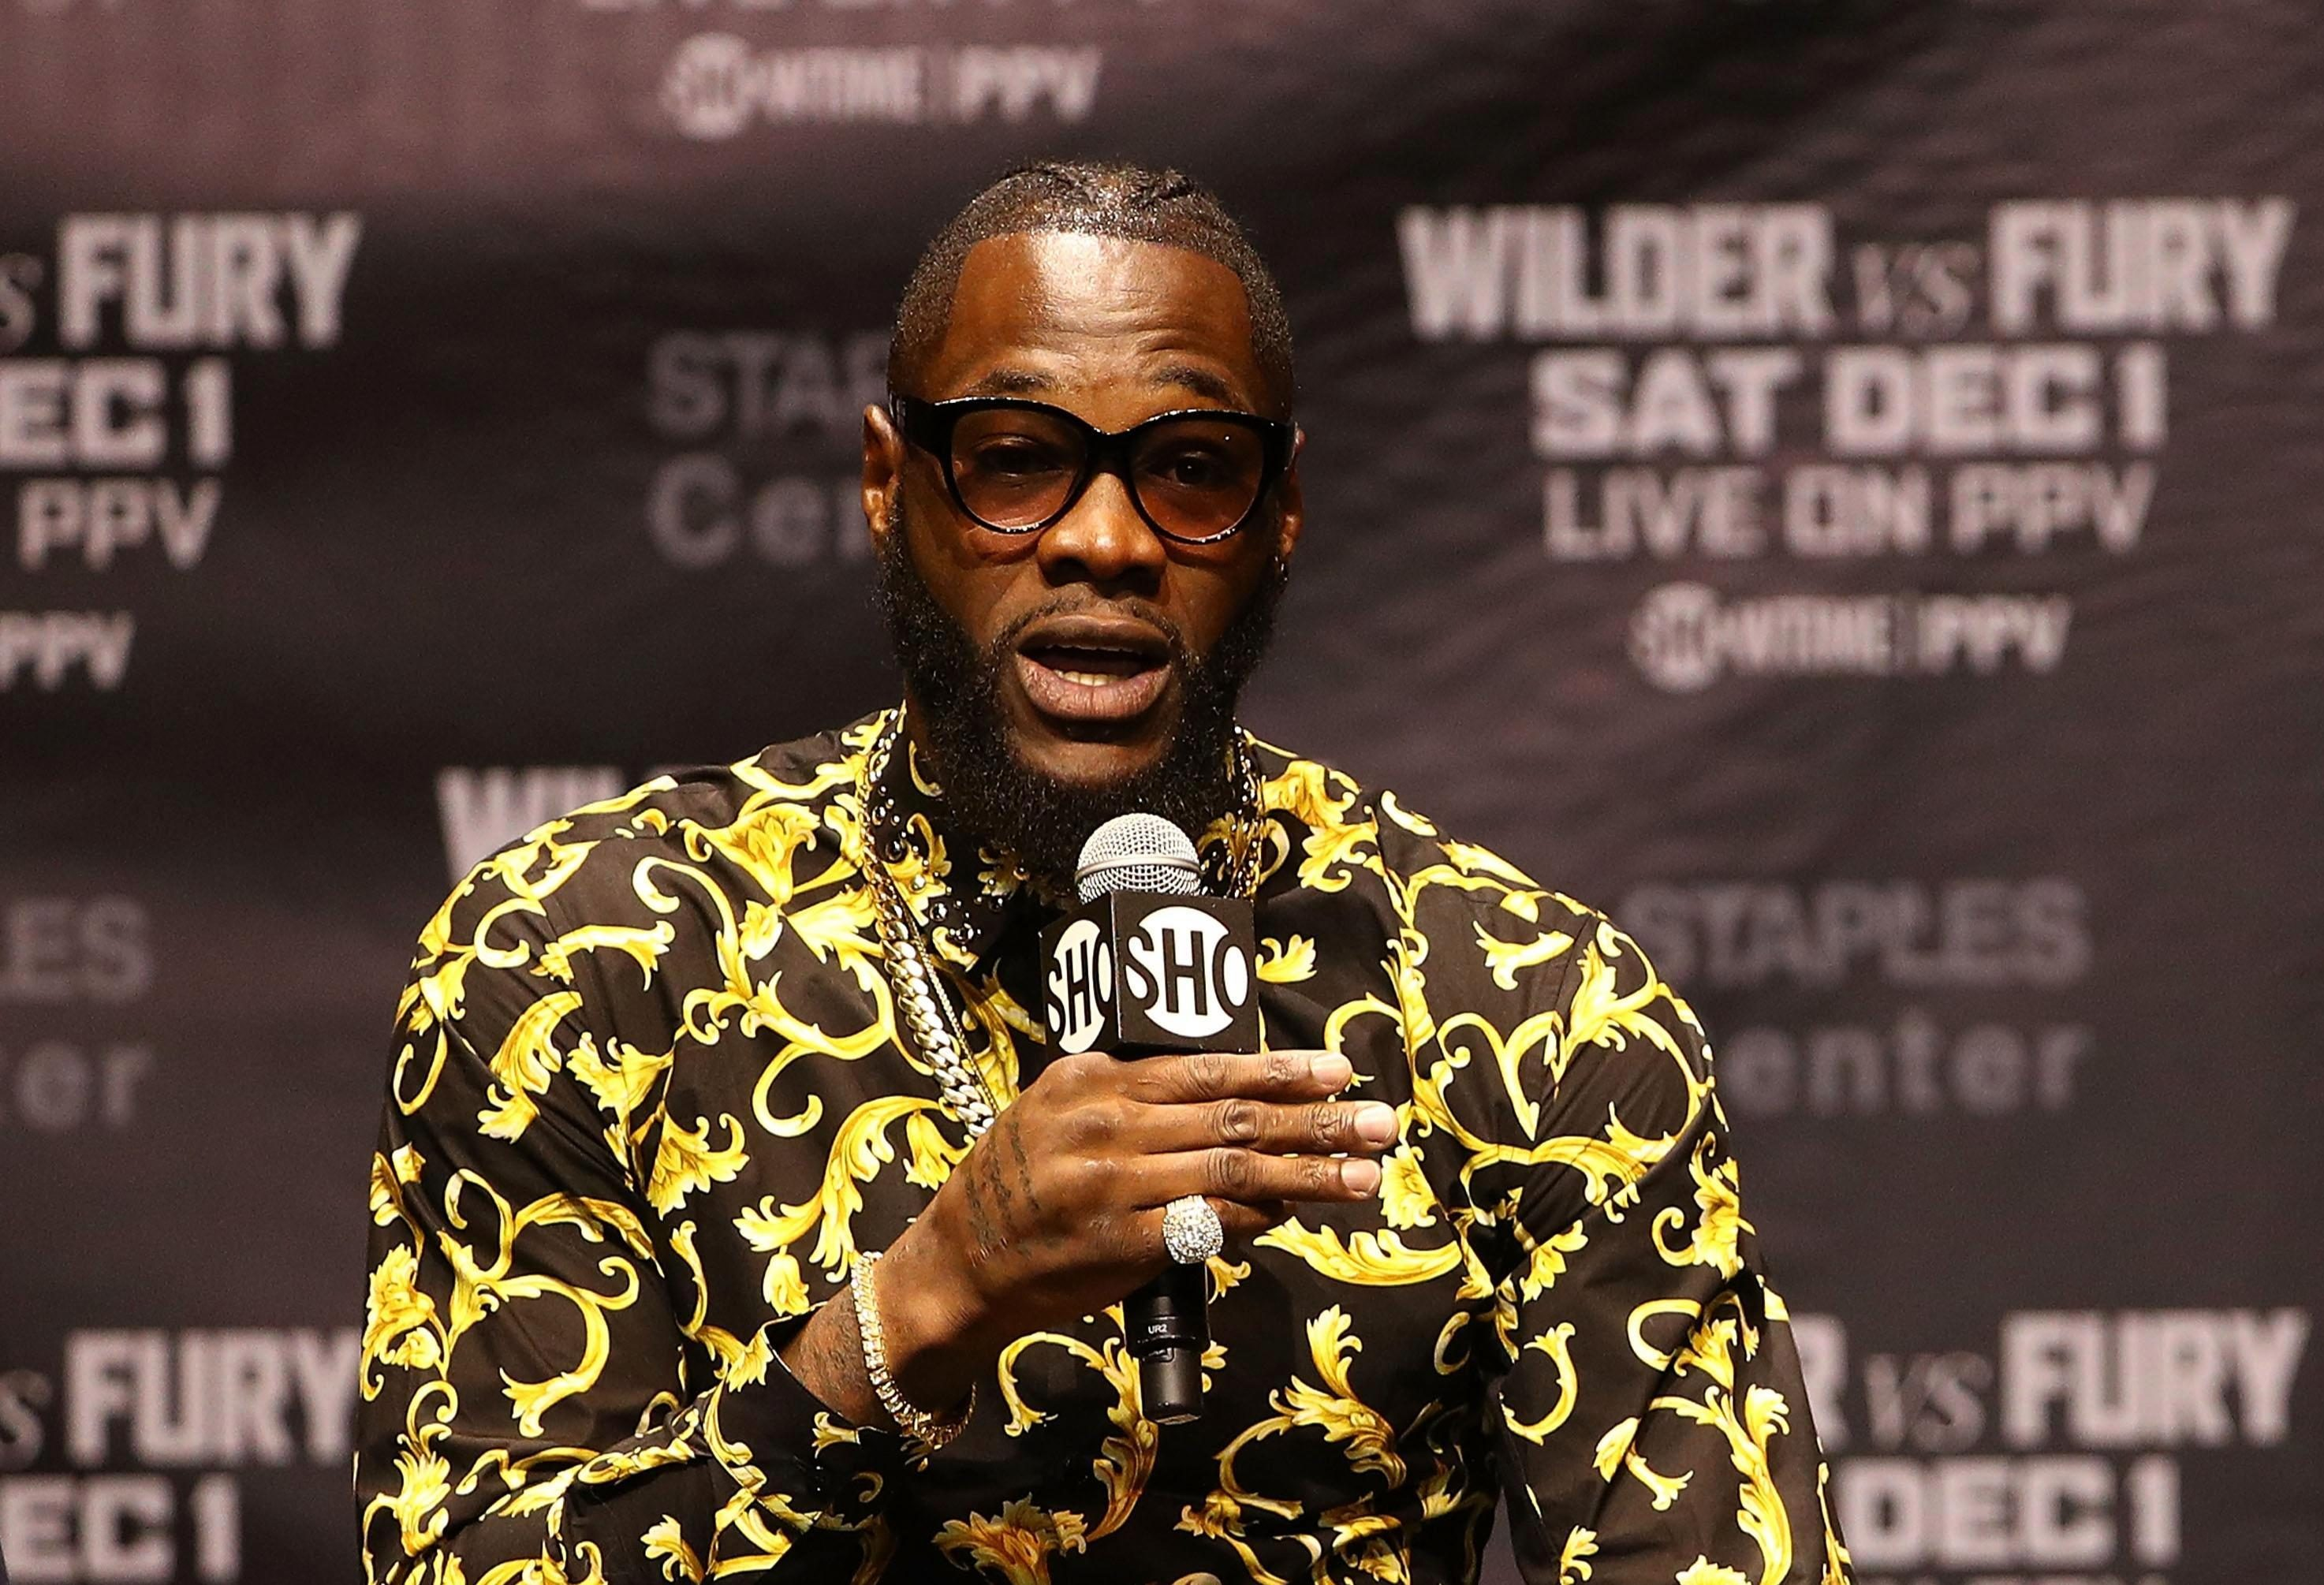 Wilder was expected to fight Anthony Joshua - and Hearn says that bout must still happen